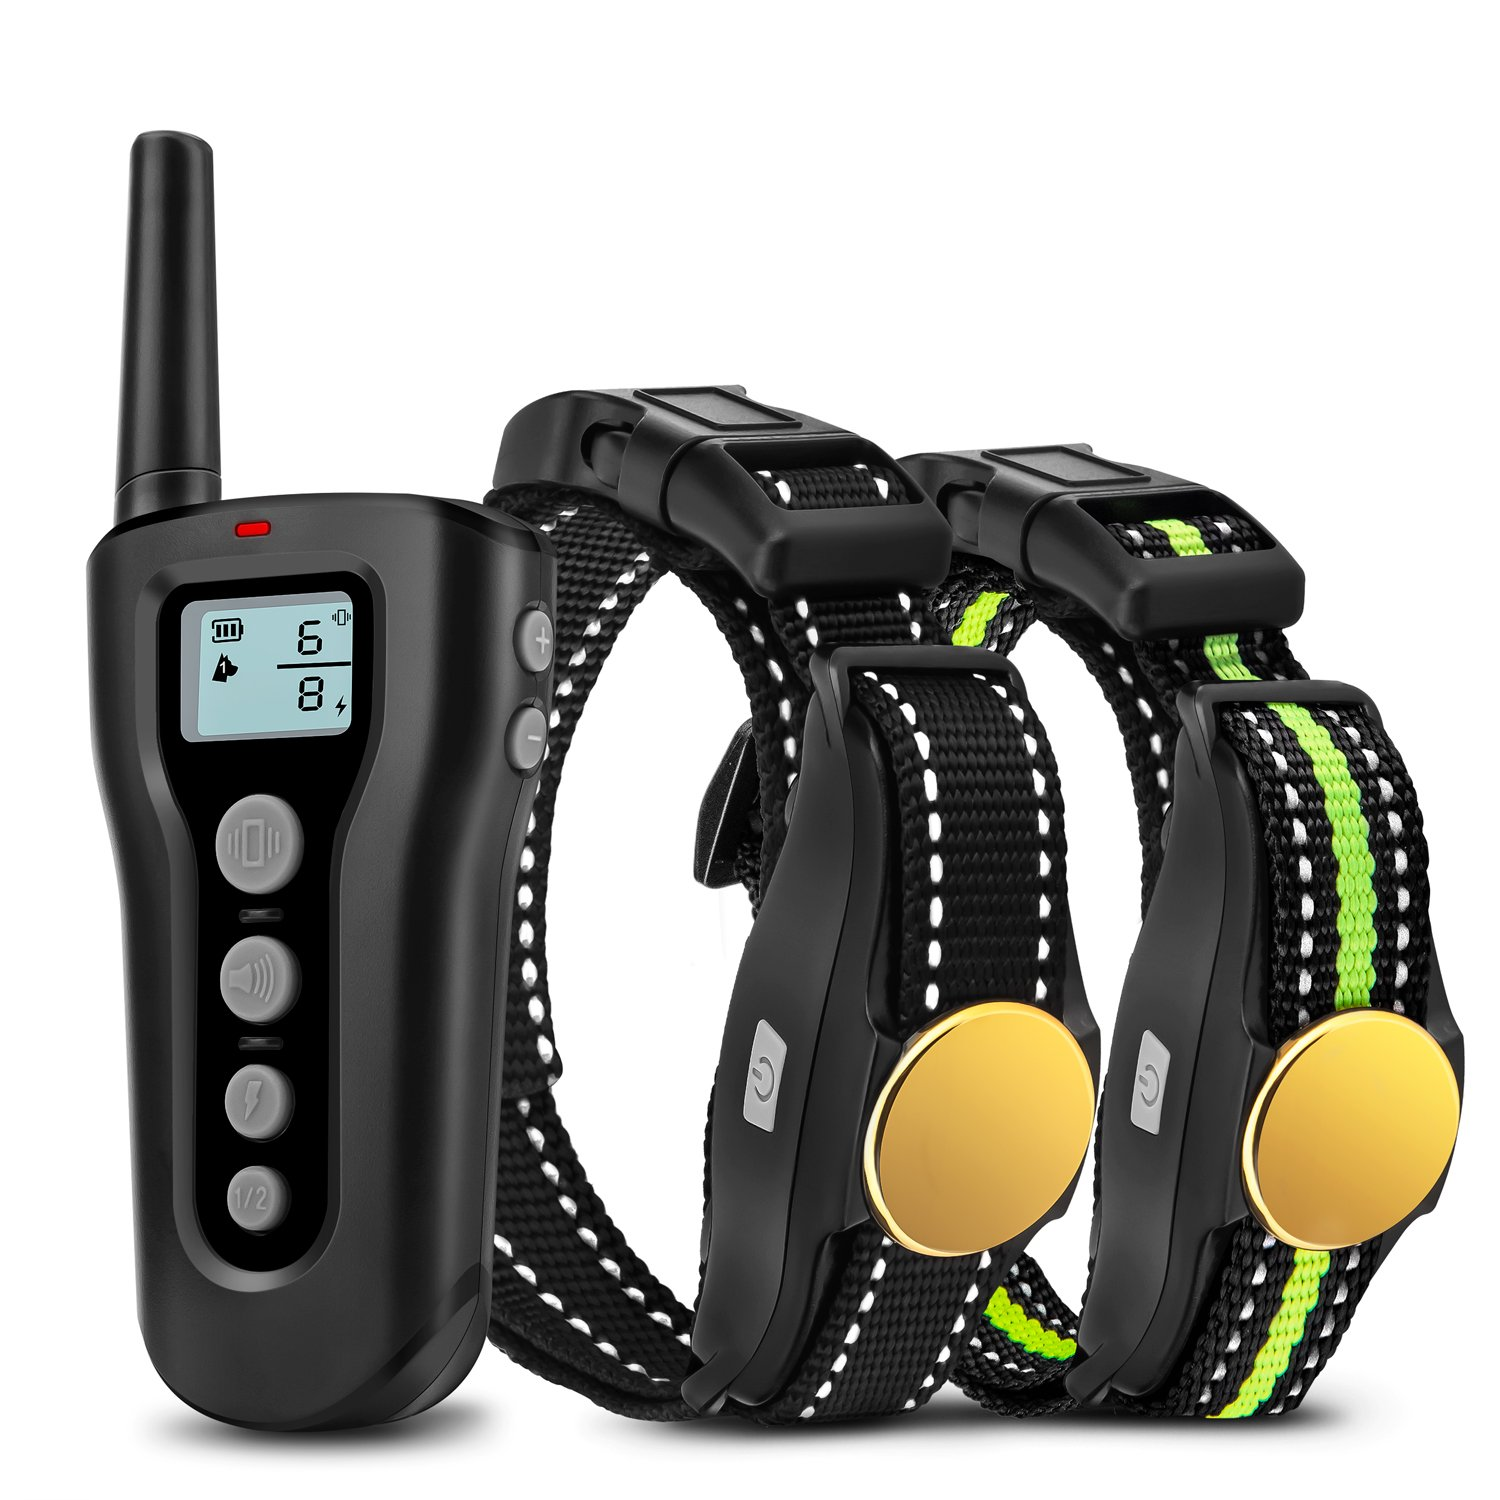 Bousnic Dog Training Collar 2 Dogs Upgraded 1000ft Remote Rechargeable Waterproof Electric Shock Collar with Beep Vibration Shock for Small Medium Large Dogs by Bousnic